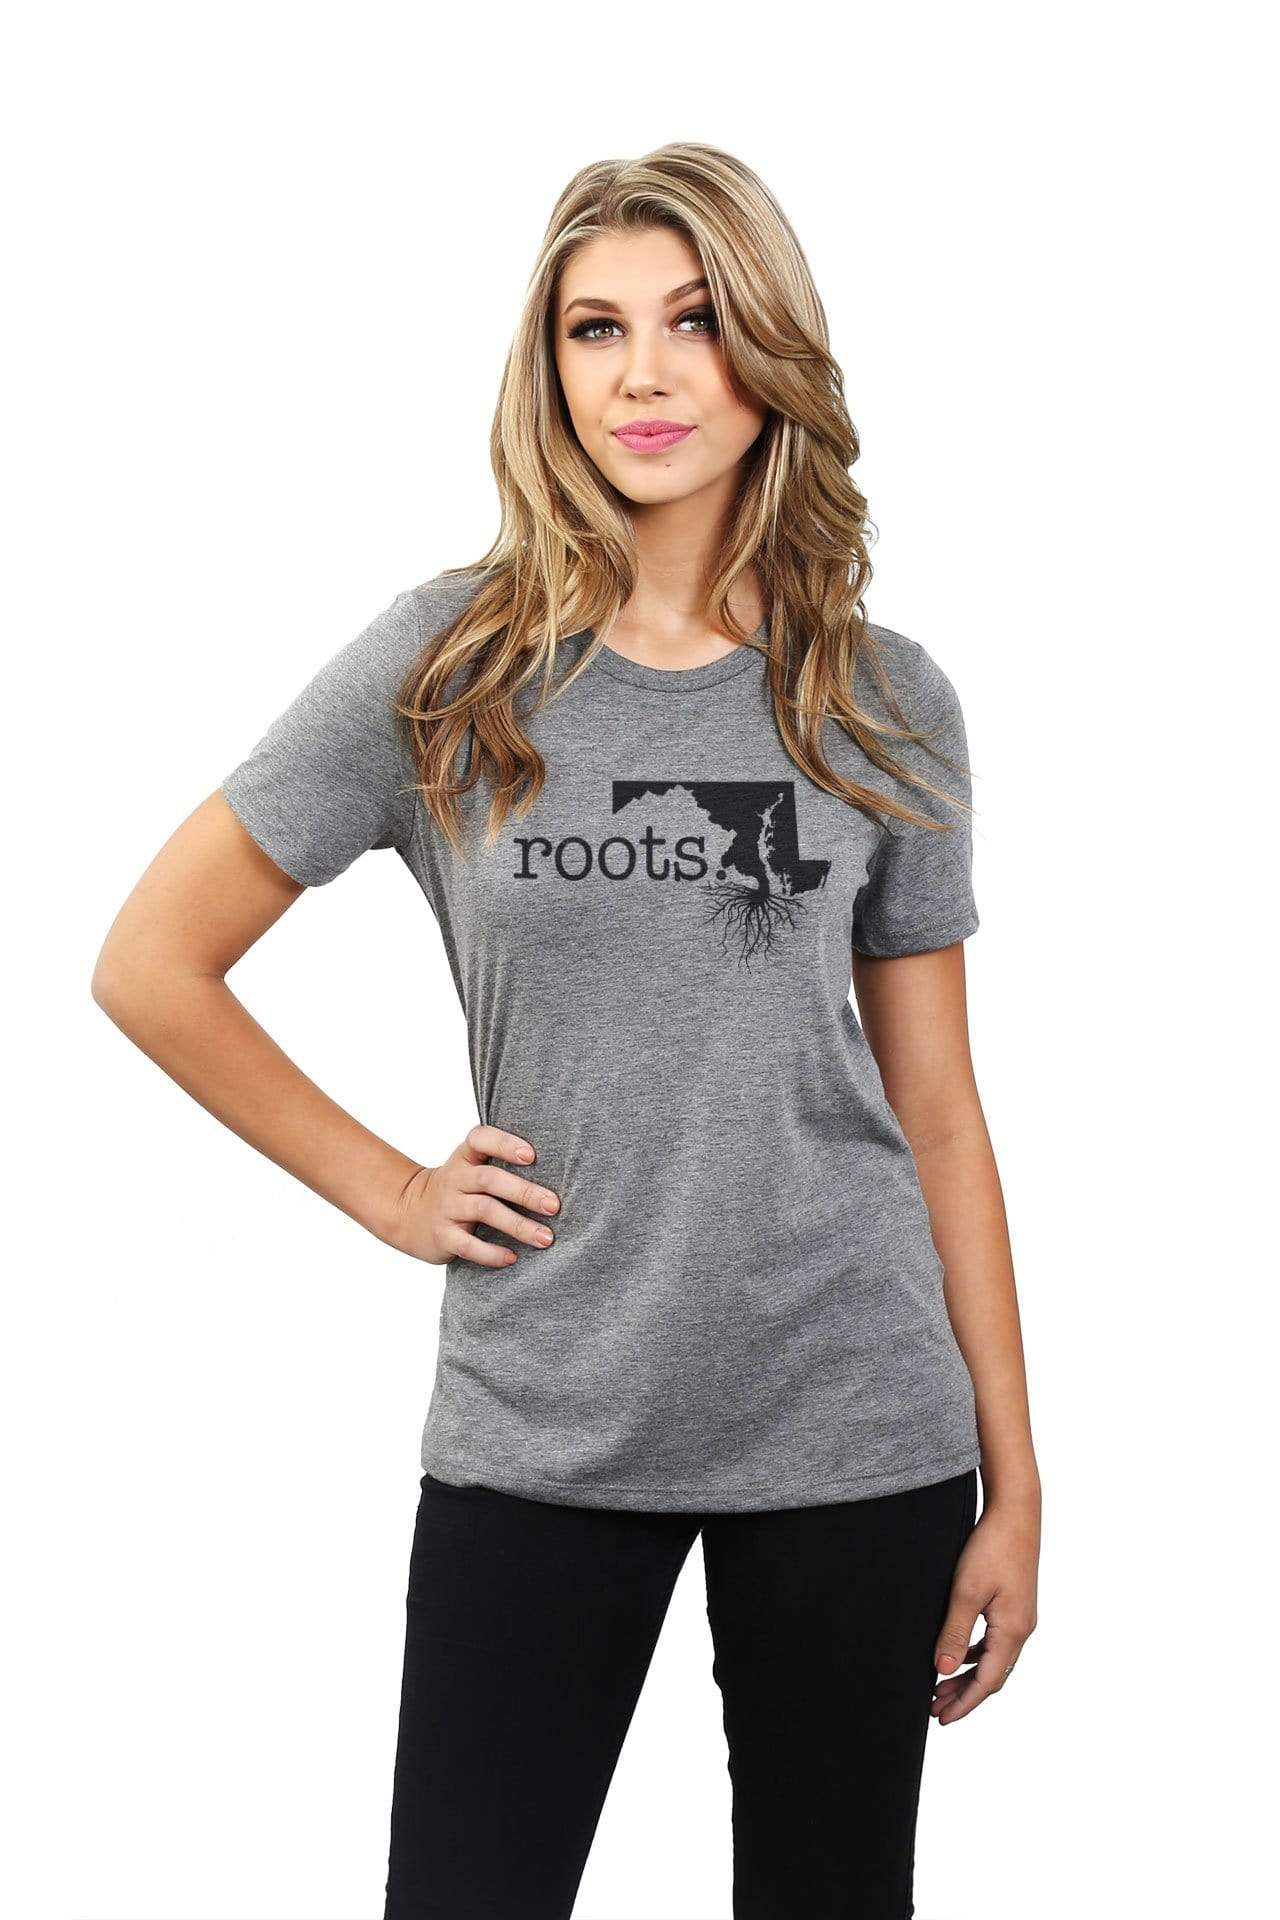 Home Roots State Maryland MD Women Heather Grey Relaxed Crew T-Shirt Tee Top